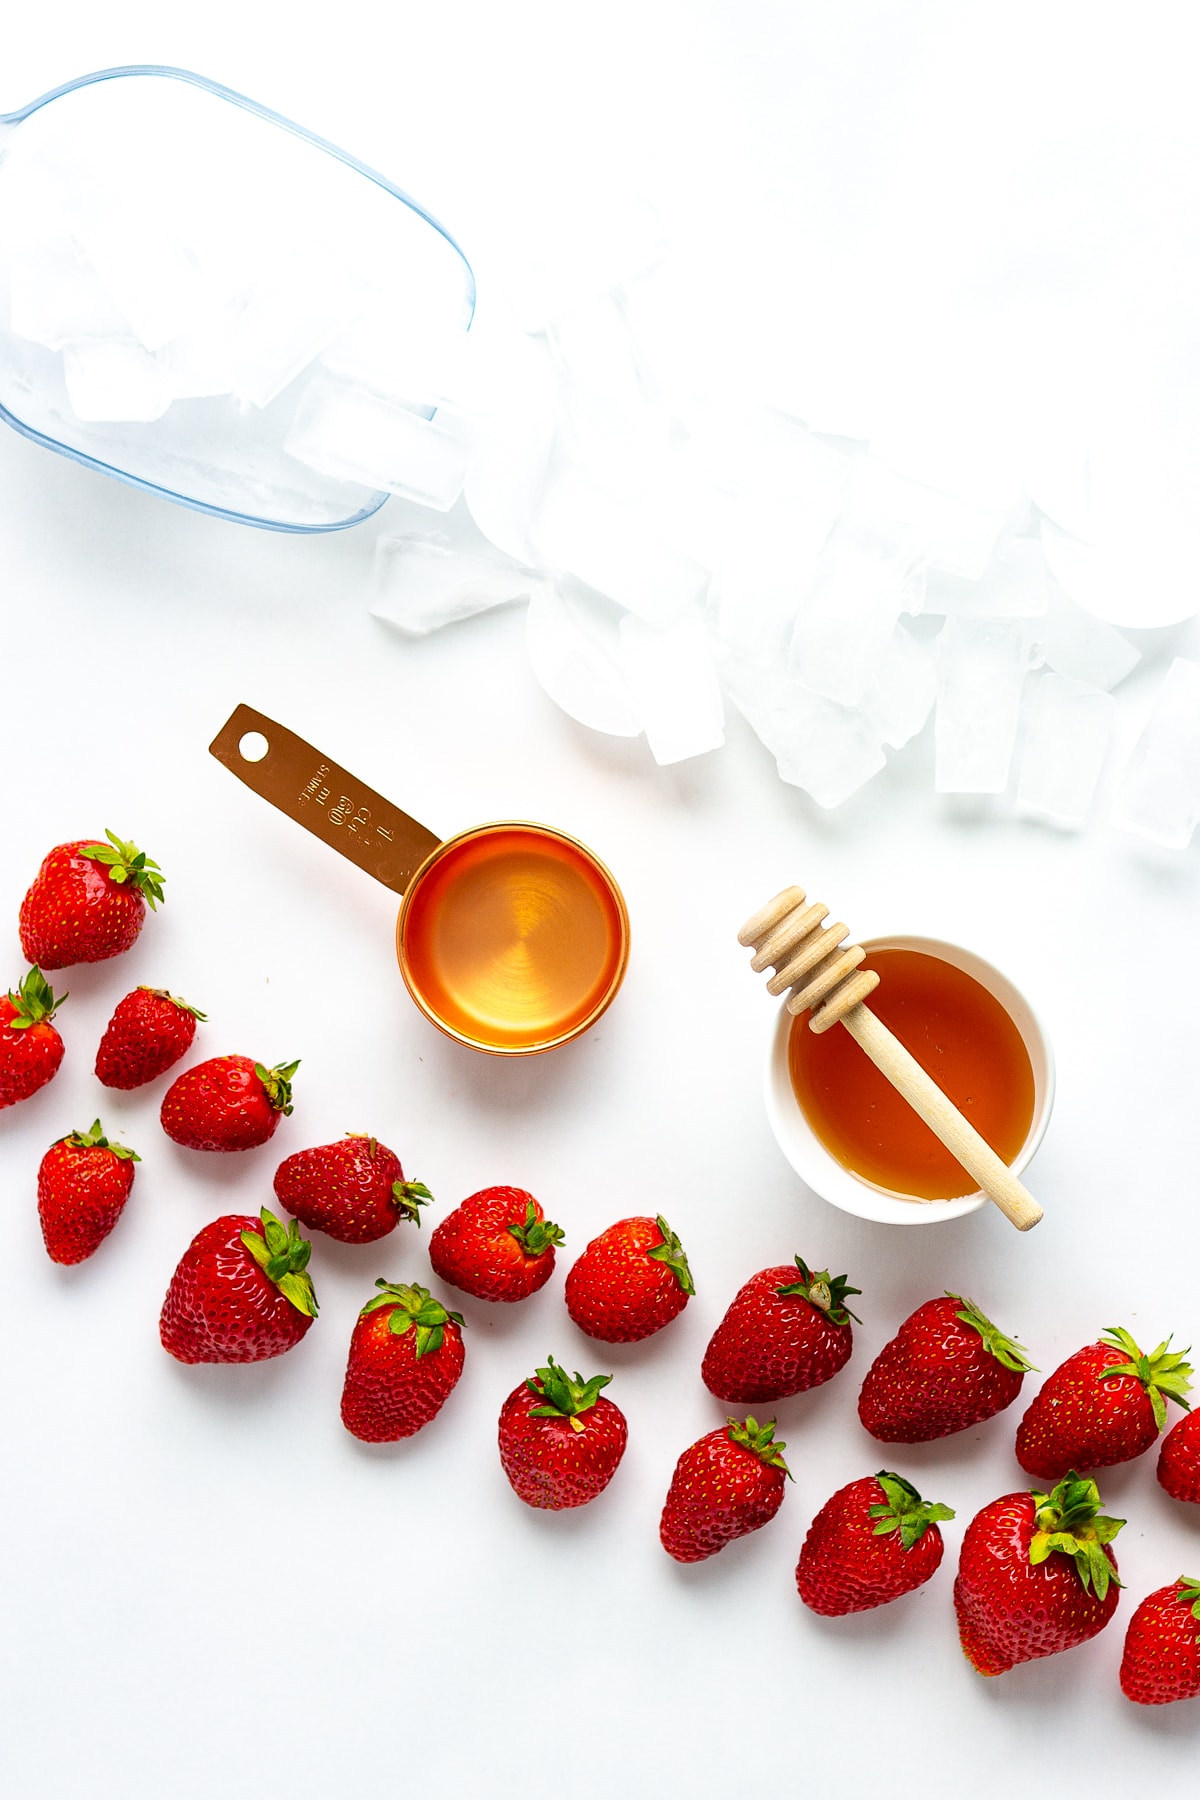 Overhead photo of the ingredients needed to make a homemade strawberry slushie.